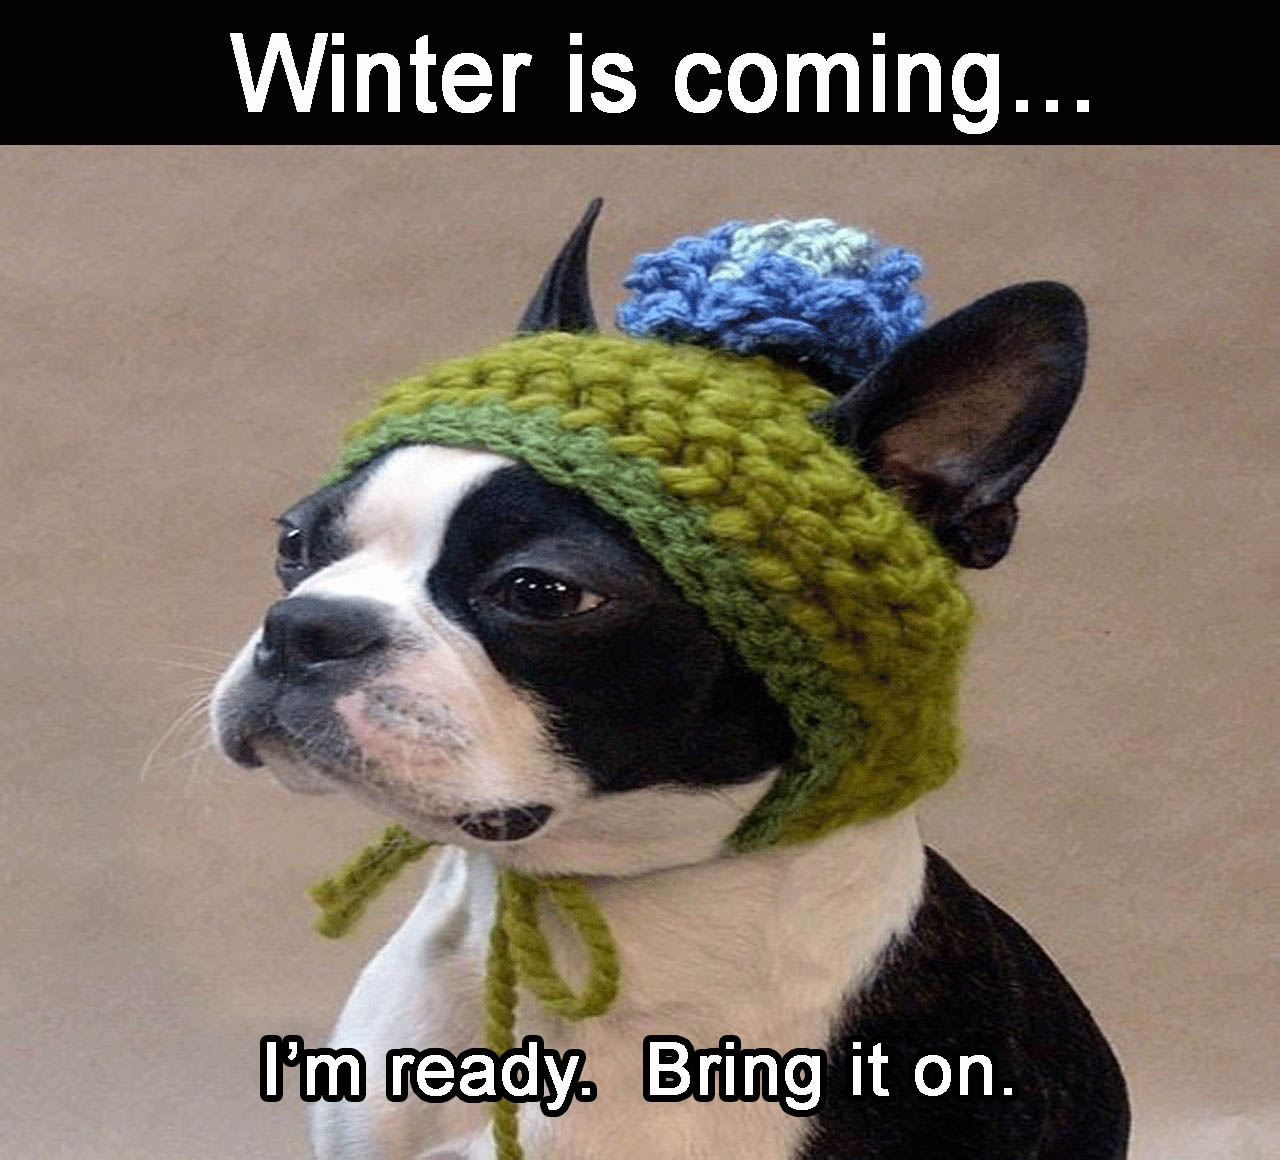 b-winter-is-coming-im-ready